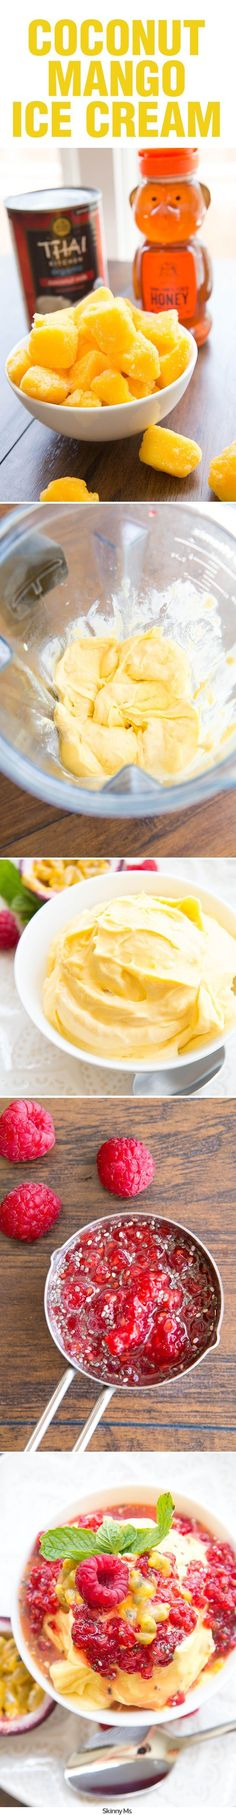 Make your own creamy, soft-serve style ice cream using just three ingredients: coconut milk, frozen fruit, and honey. #mangoicecream